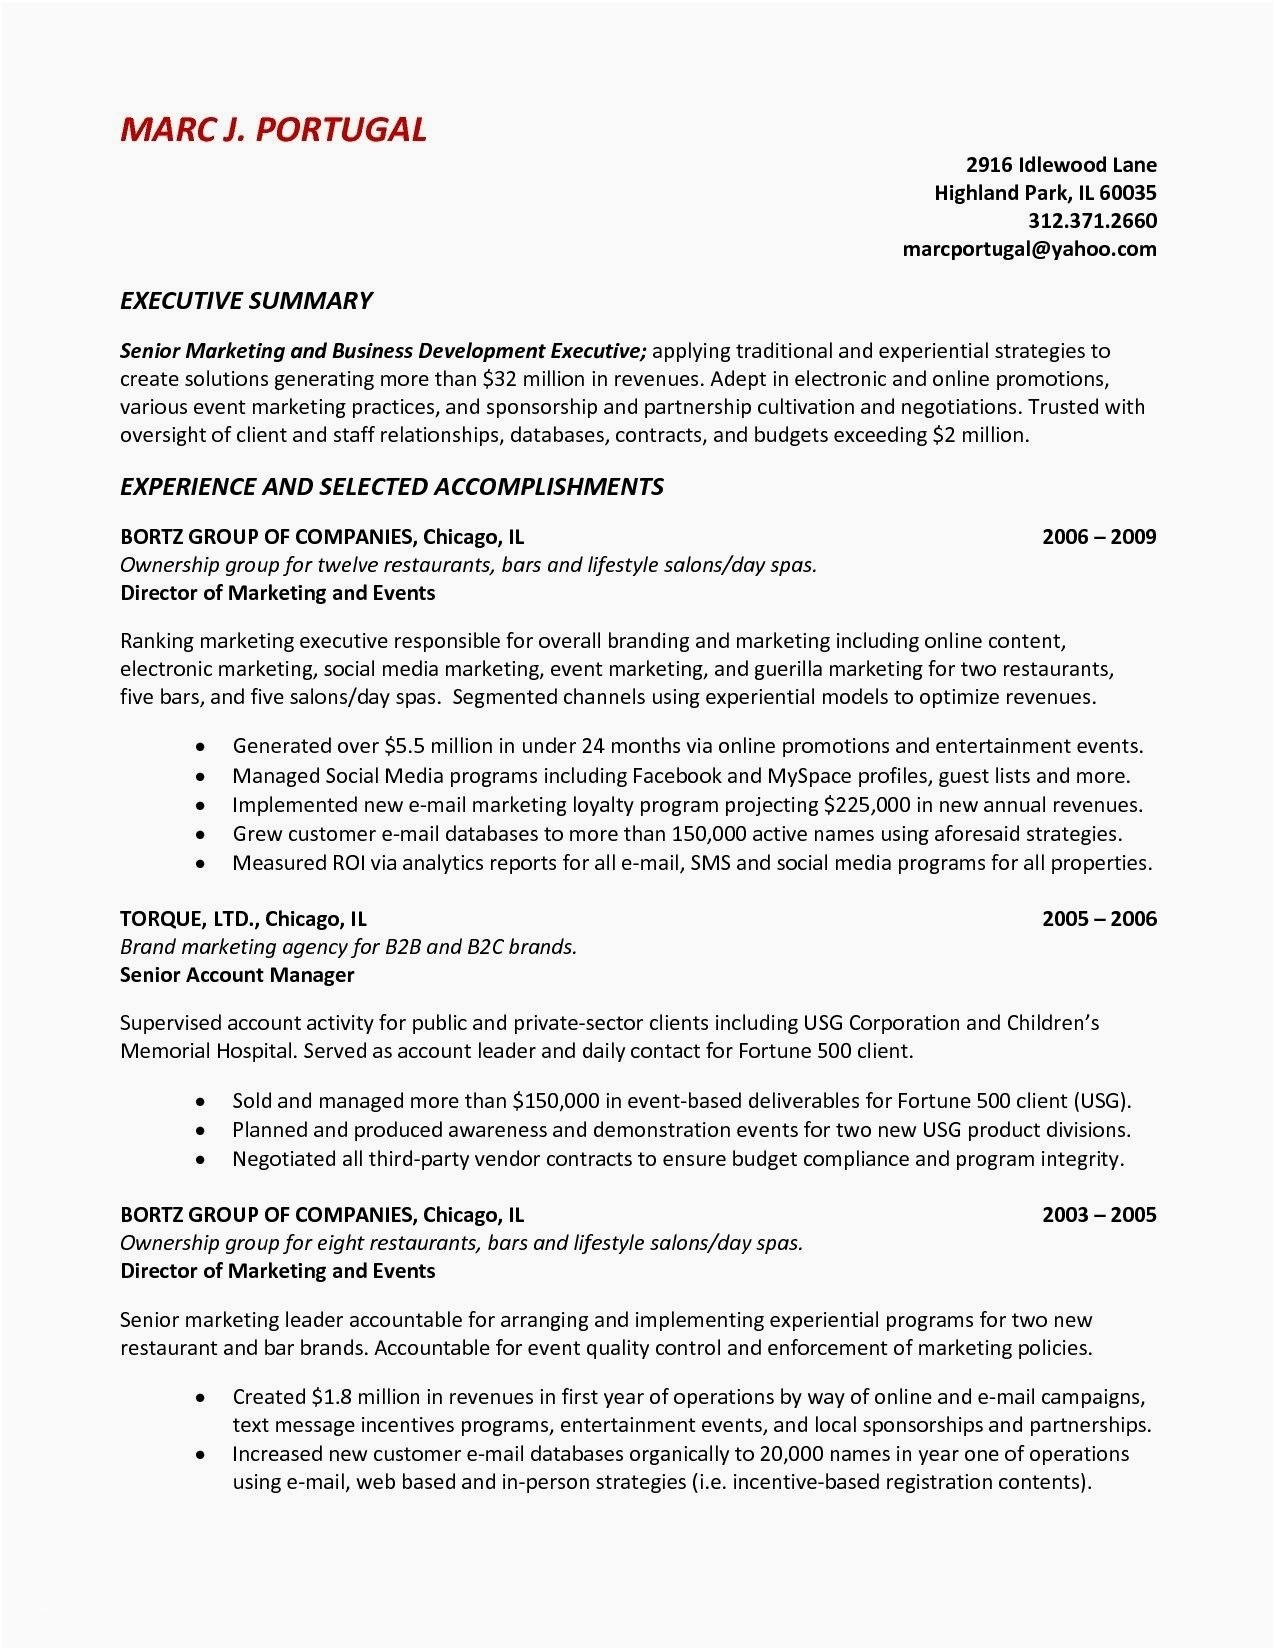 Sponsorship Resume Template - Objectives for Resumes Awesome event Resume Template Reference Good